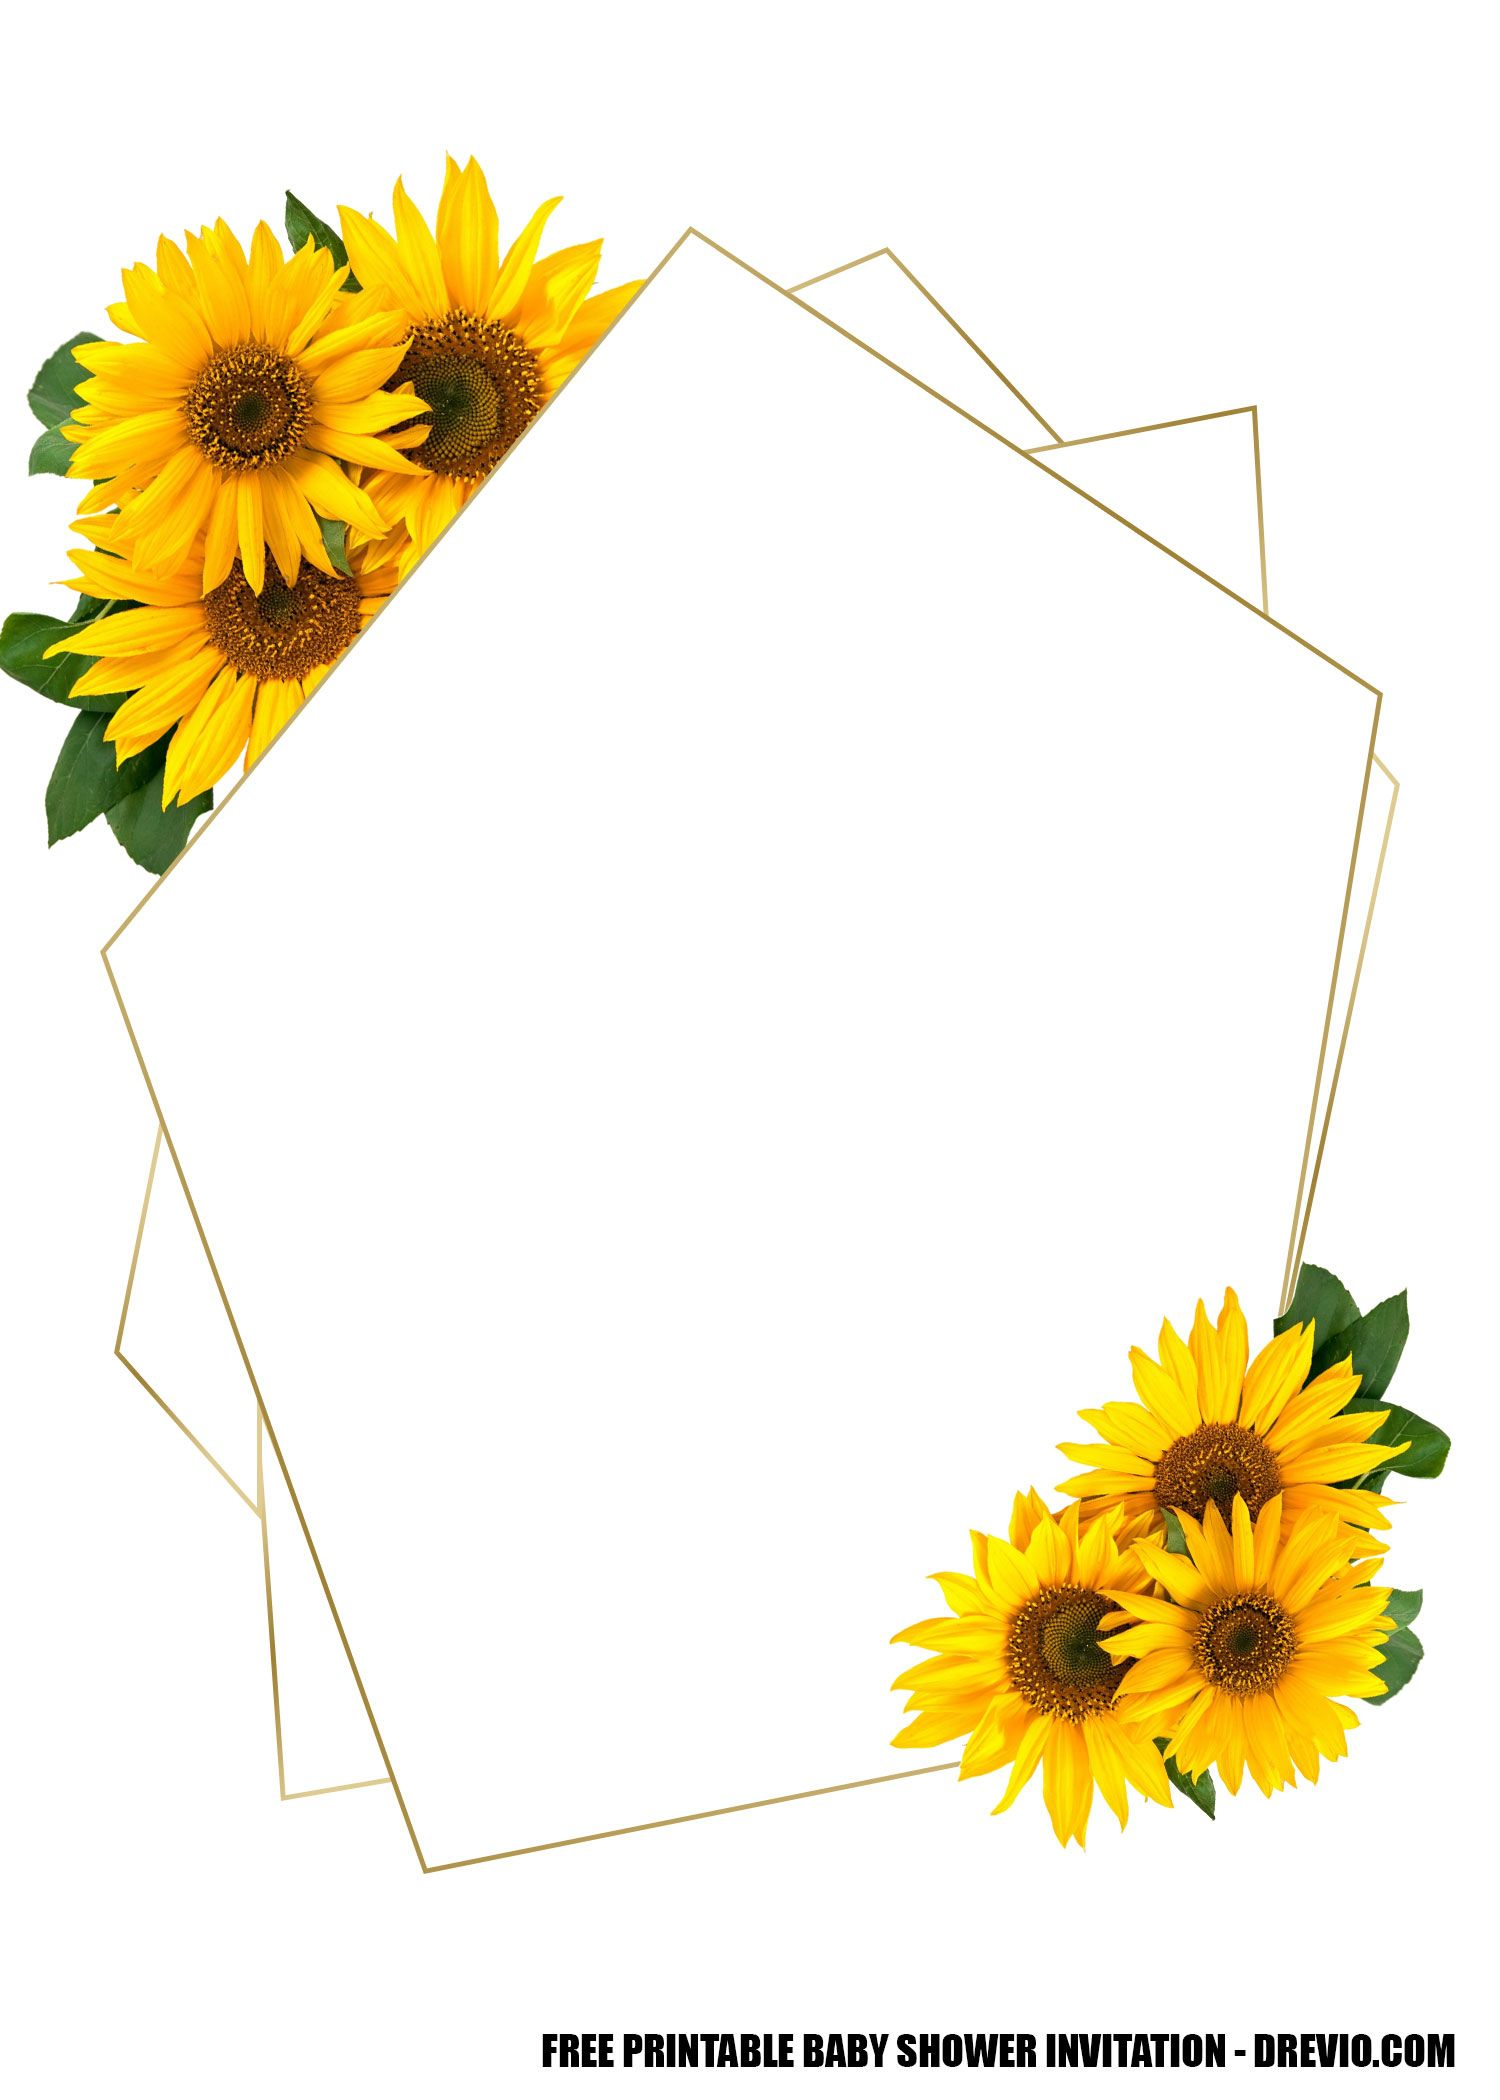 Free Printable Template Oh Baby Sunflower Baby Shower For Girl Baby Drevio In 2020 Sunflower Baby Showers Sunflower Baby Shower Invitations Sunflower Invitations